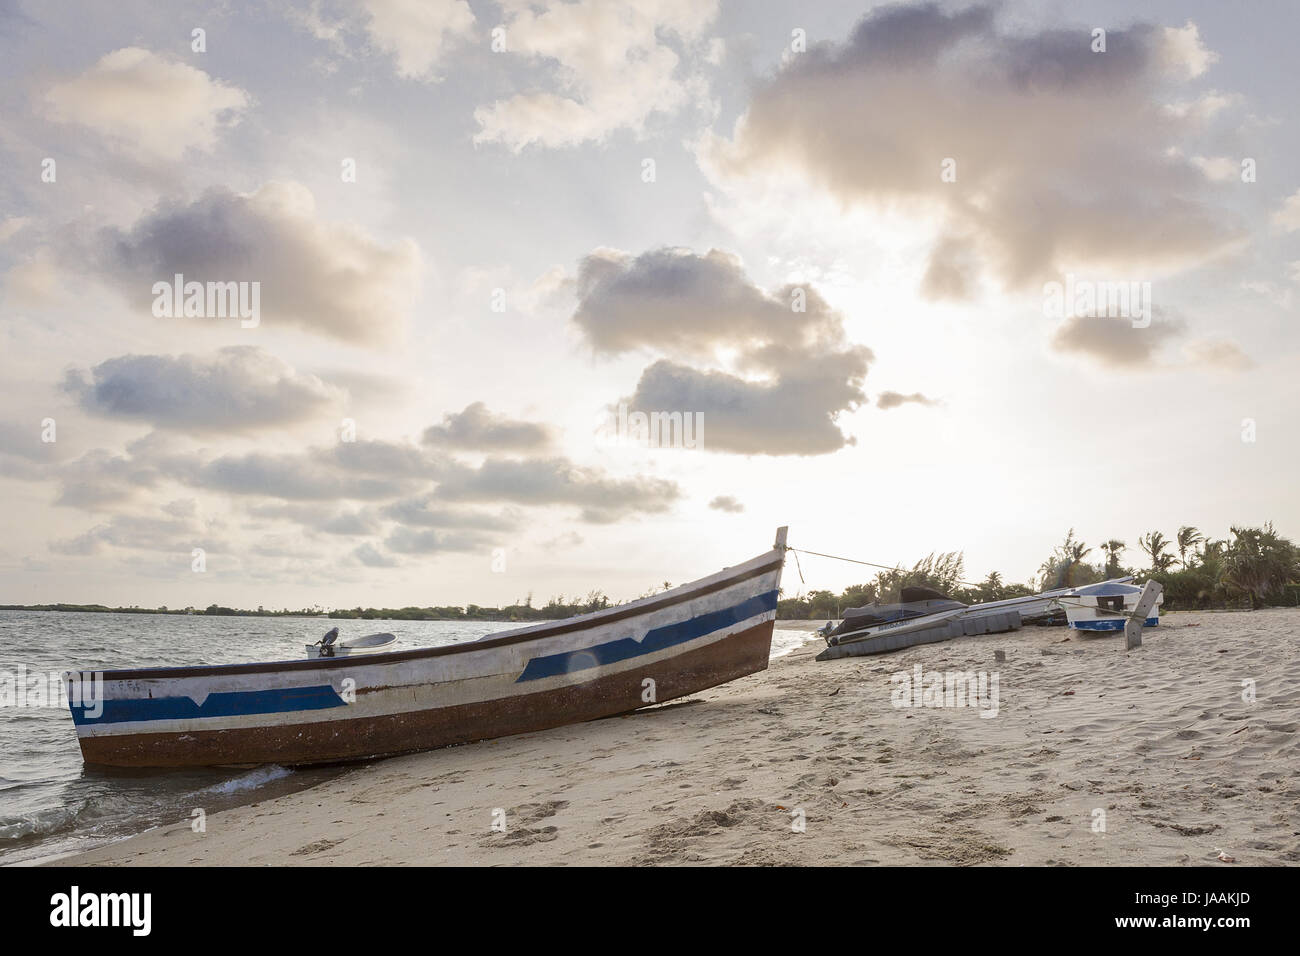 Sunset on tropical island of angola mussulo with boats. - Stock Image